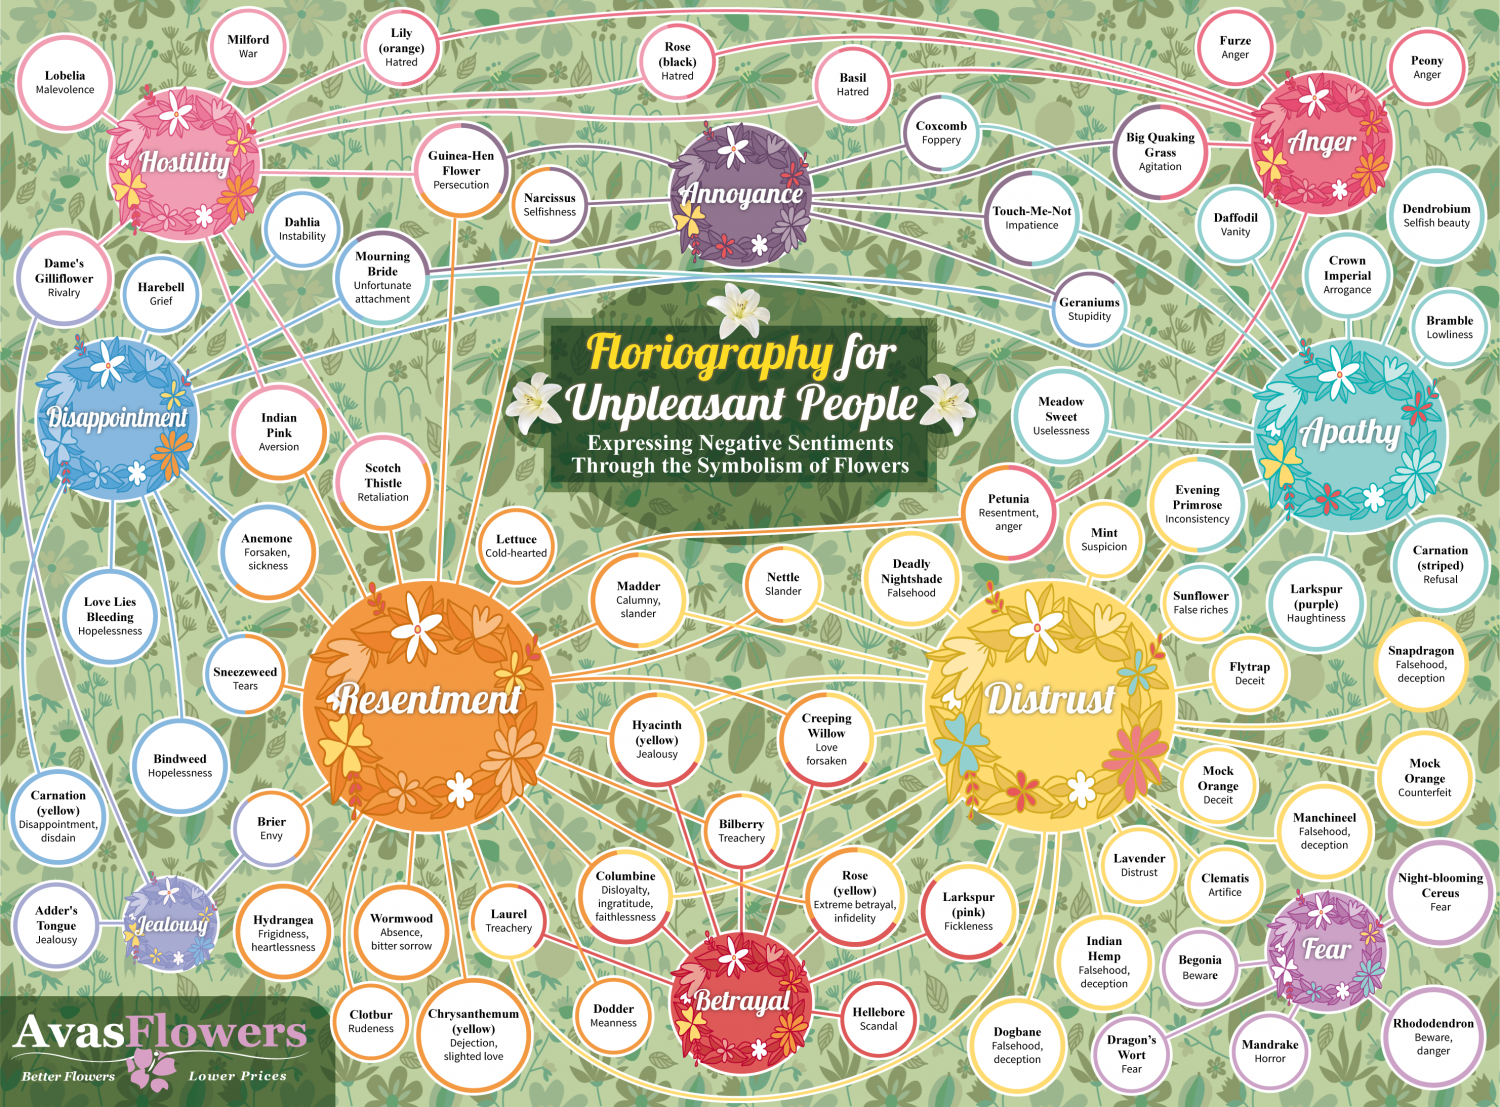 Floriography for Unpleasant People Infographic